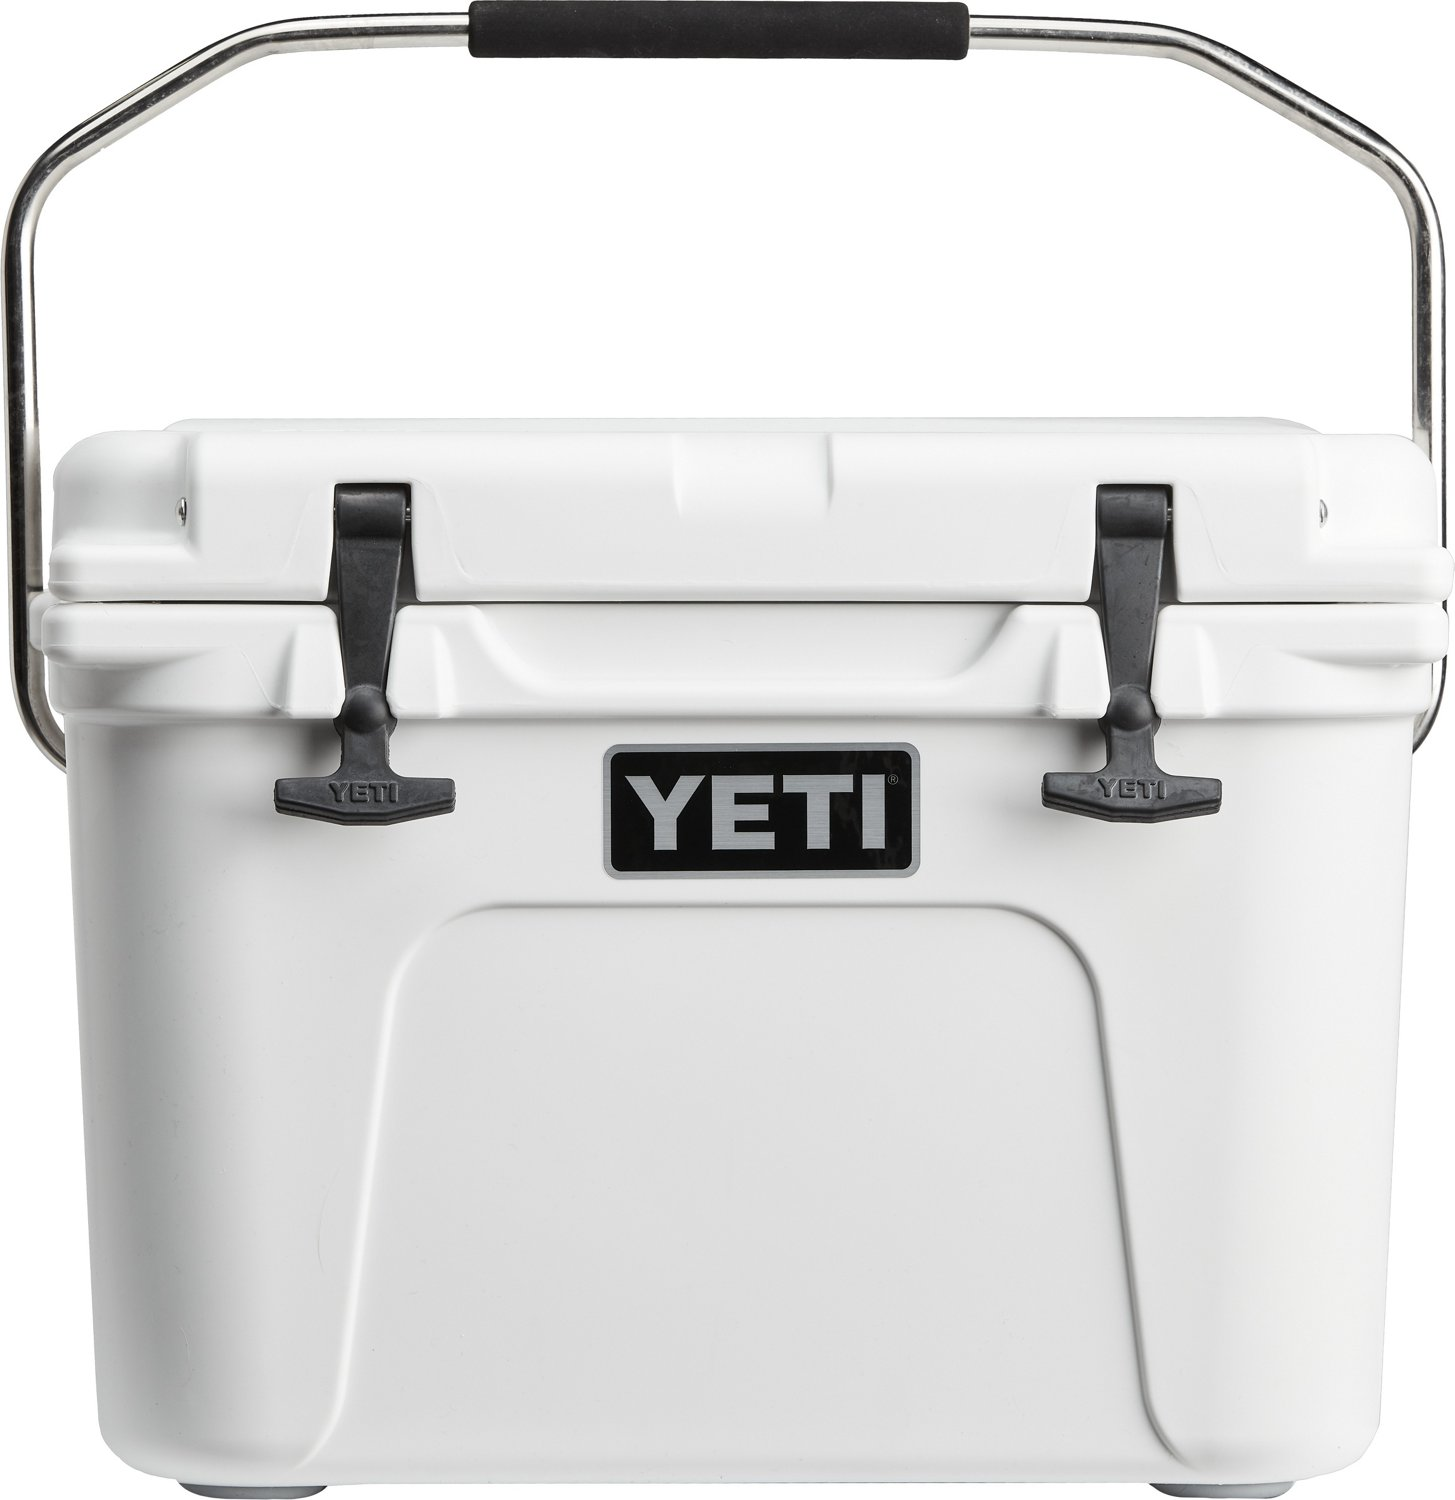 YETI Roadie 20 Cooler.jpg